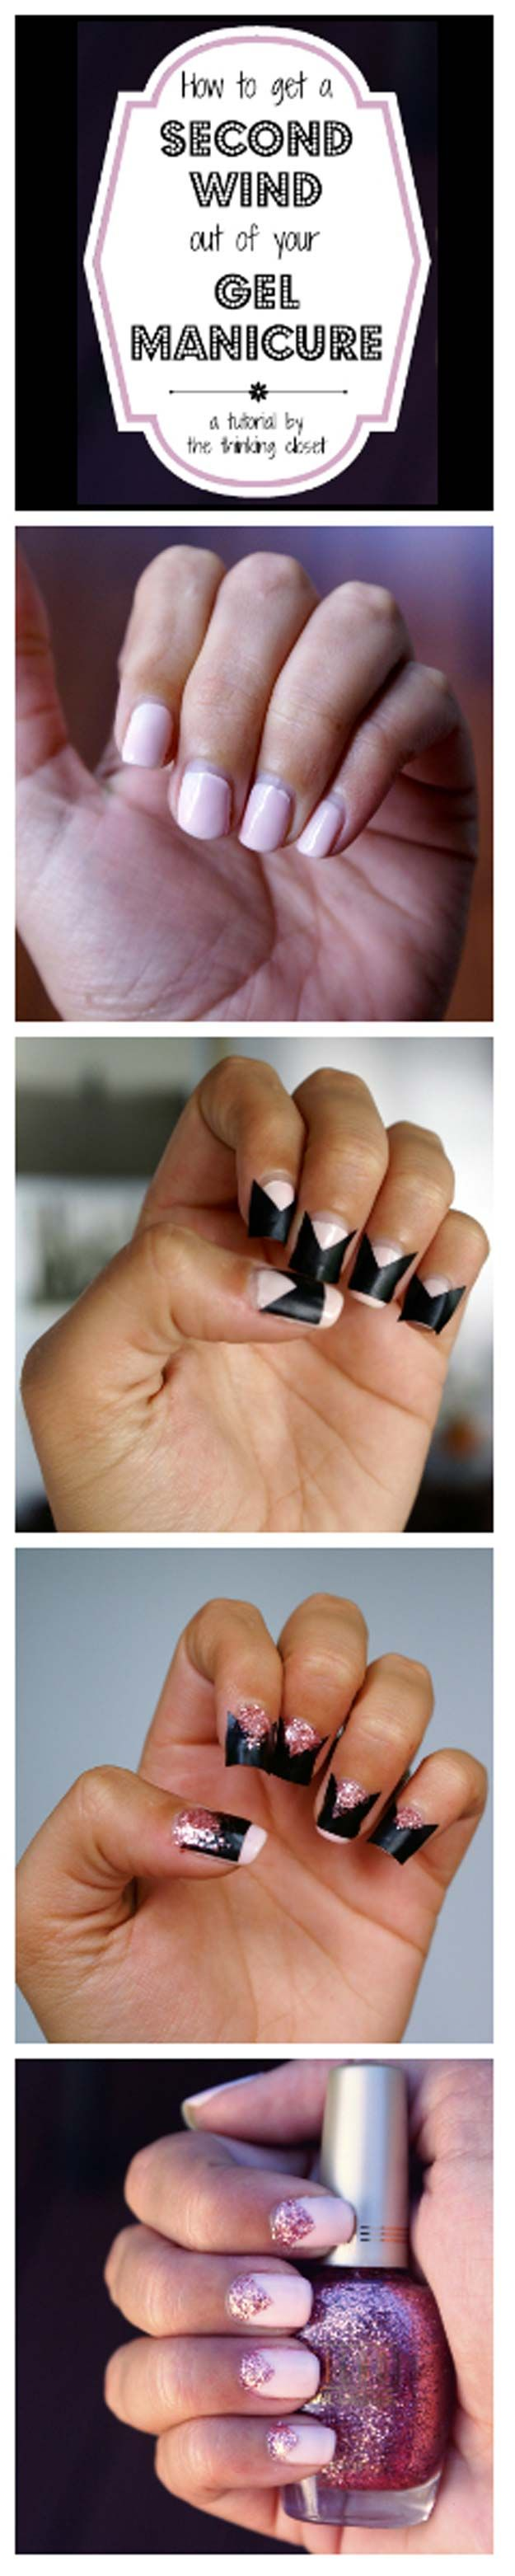 Cool Manicure Hacks - How To Get A Second Wind Out Of Your Gel Manicure and Silhouette Winner - Amazing DIY Manicure Hacks You can Do At Home To Achieve The Same Style You Would Pay For. Whether Using Gel Or Acrylic, These Manicure Tips And Tricks Are Explained In Step By Step Tutorials To Help You Get The Nail Tips Every Girl Want. Life Changing Products And Tutorials For Awesome Nailart, Art Designs, And Simple Ideas And Nail Art You To Get You Looking Like The Salons Would. Try These…